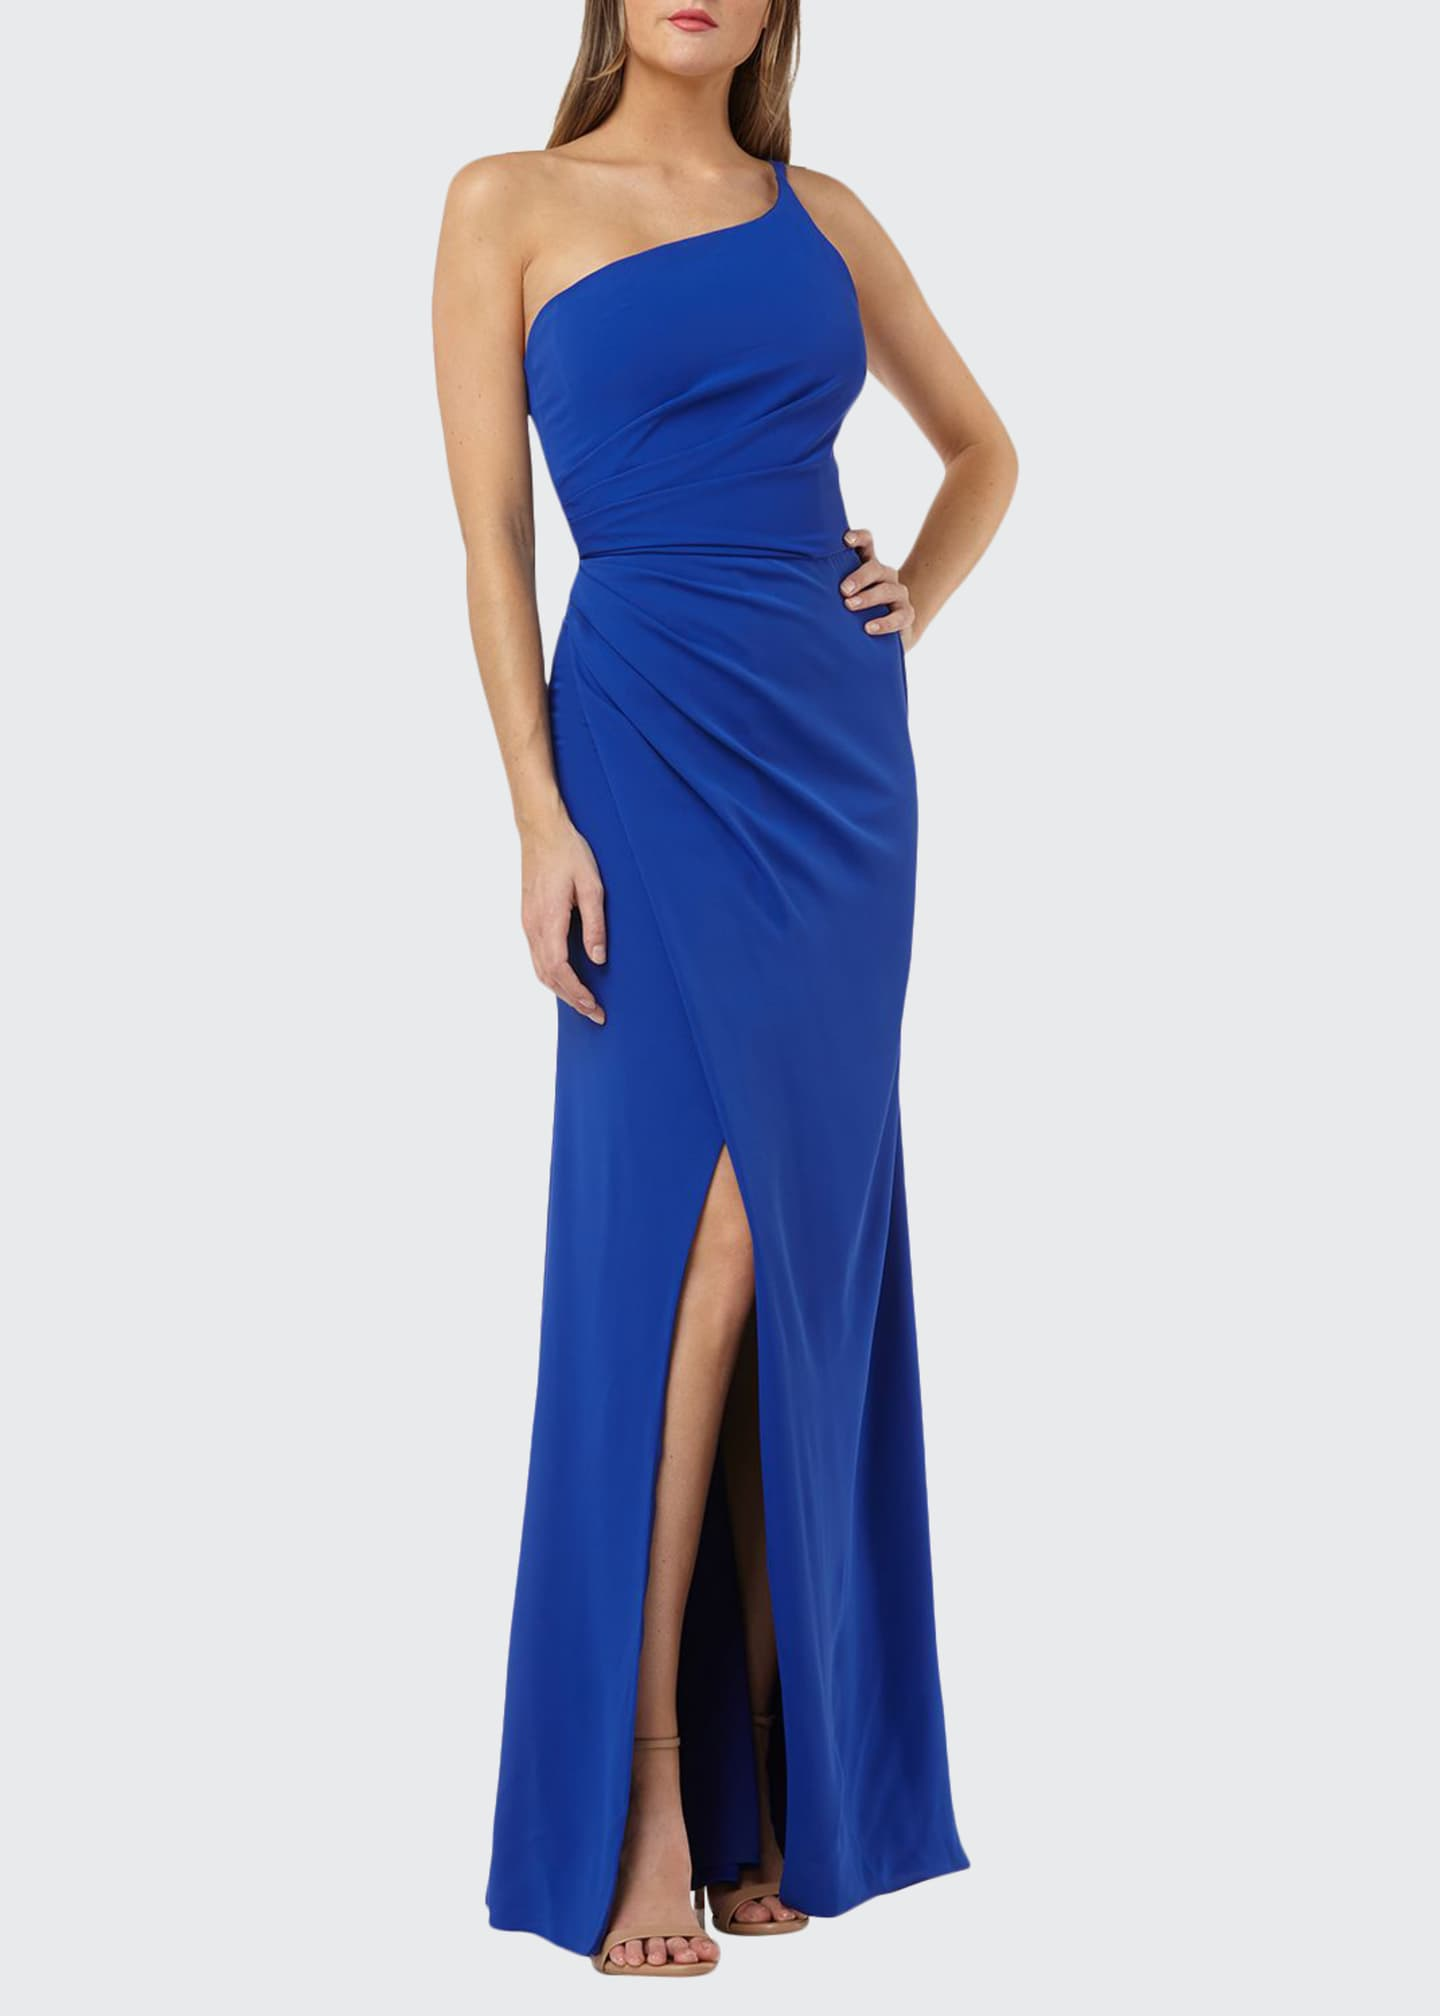 Carmen Marc Valvo Infusion One-Shoulder Crepe Gown with